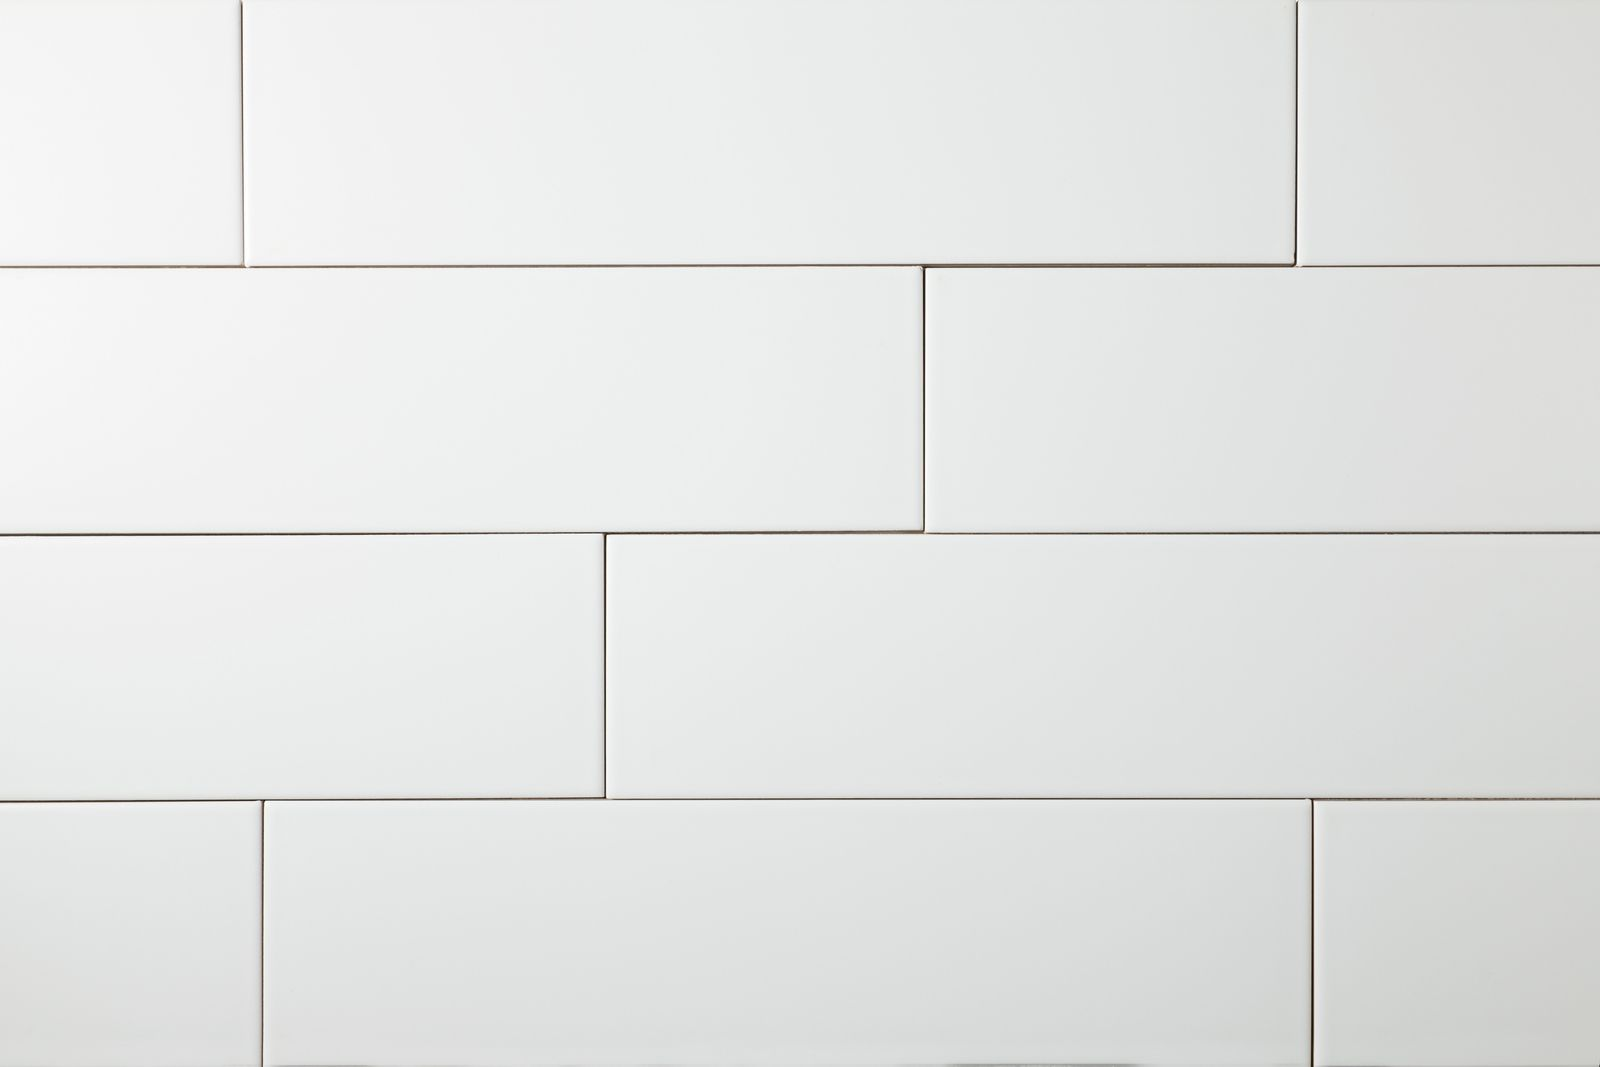 Rosco And Keaton Shower Wall 3 99 Sf 4x16 Matte White Subway Tile